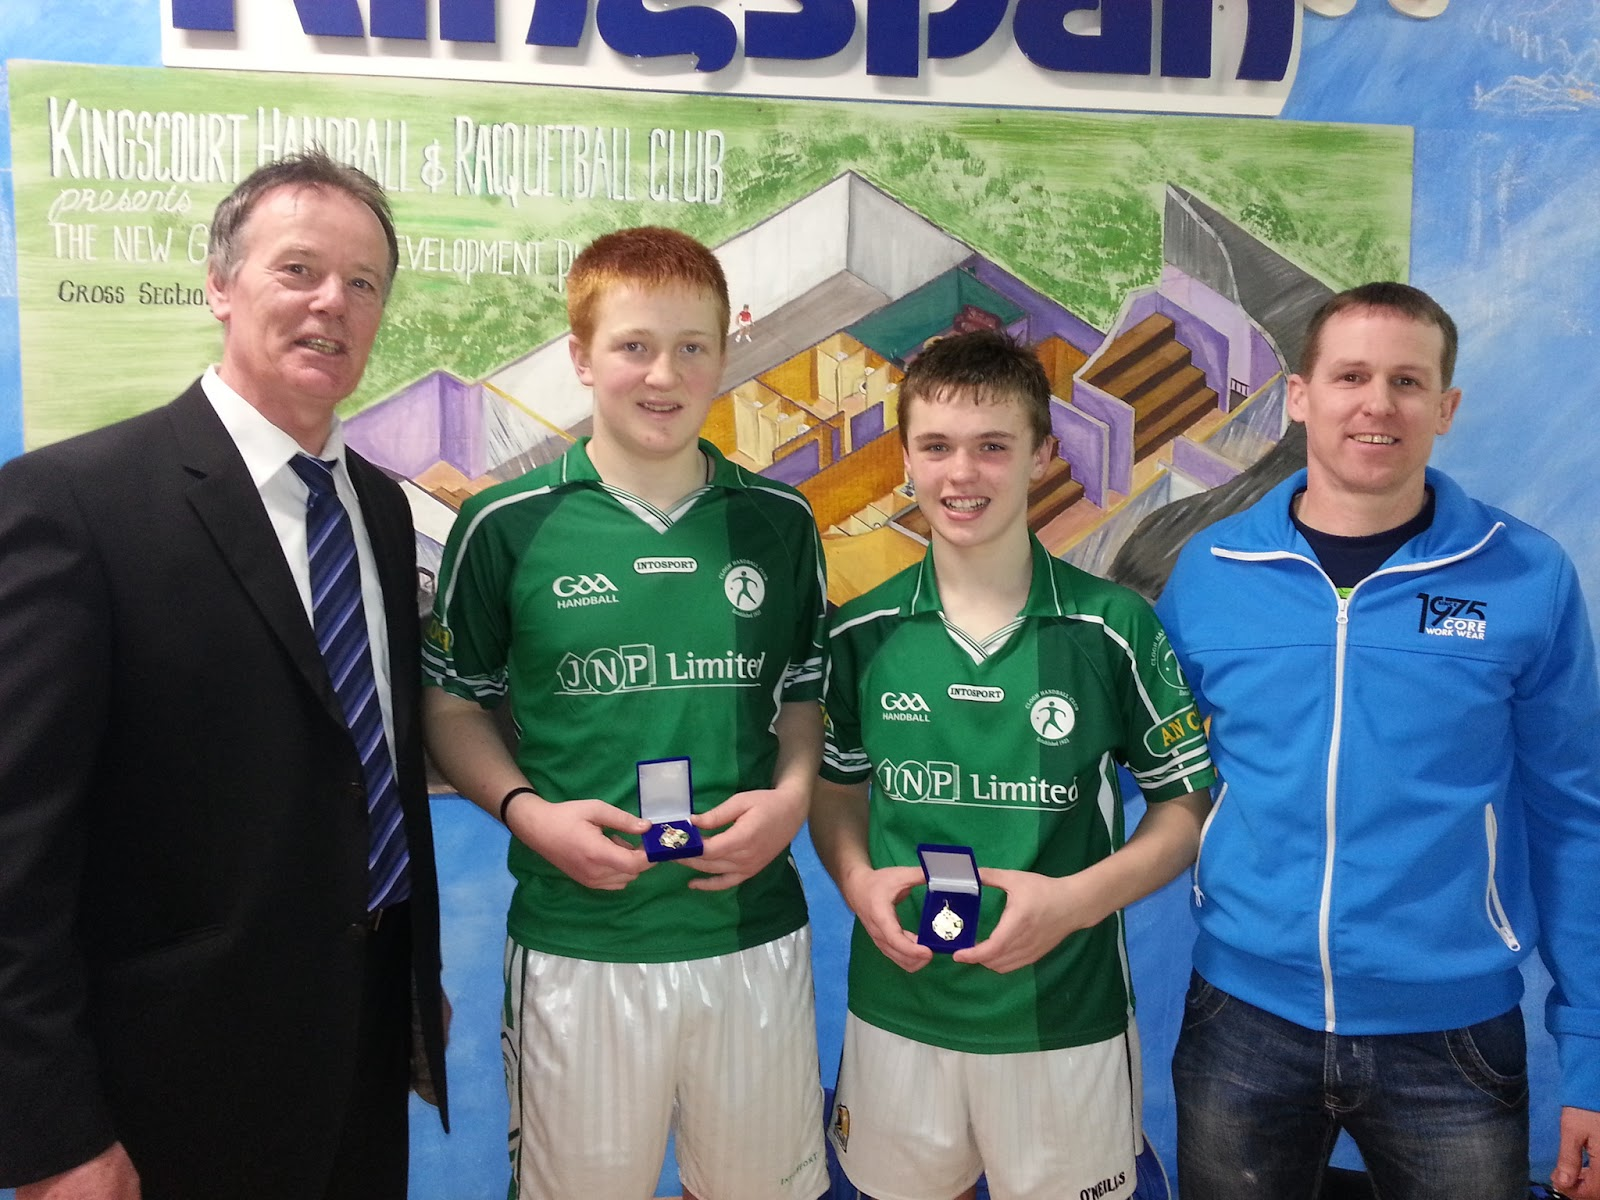 2013 All Ireland Colleges Junior Doubles winners